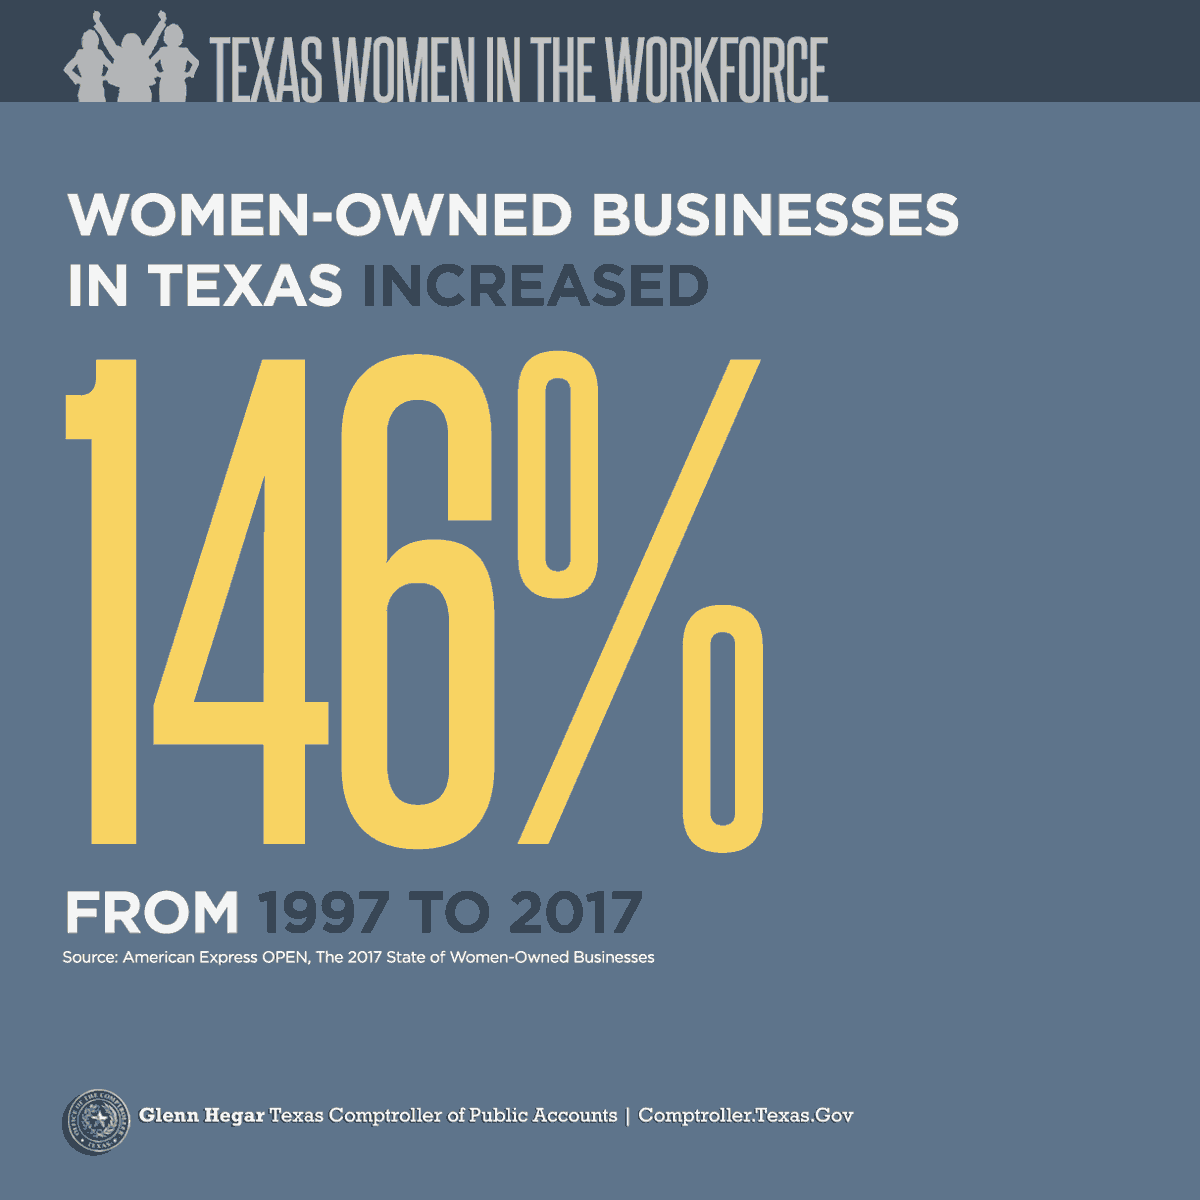 Texas Women in the Workforce -  Women-owned businesses in Texas increased 146% from 1997 to 2017. Source: American Express OPEN, The 2017 State of Women-Owned Businesses